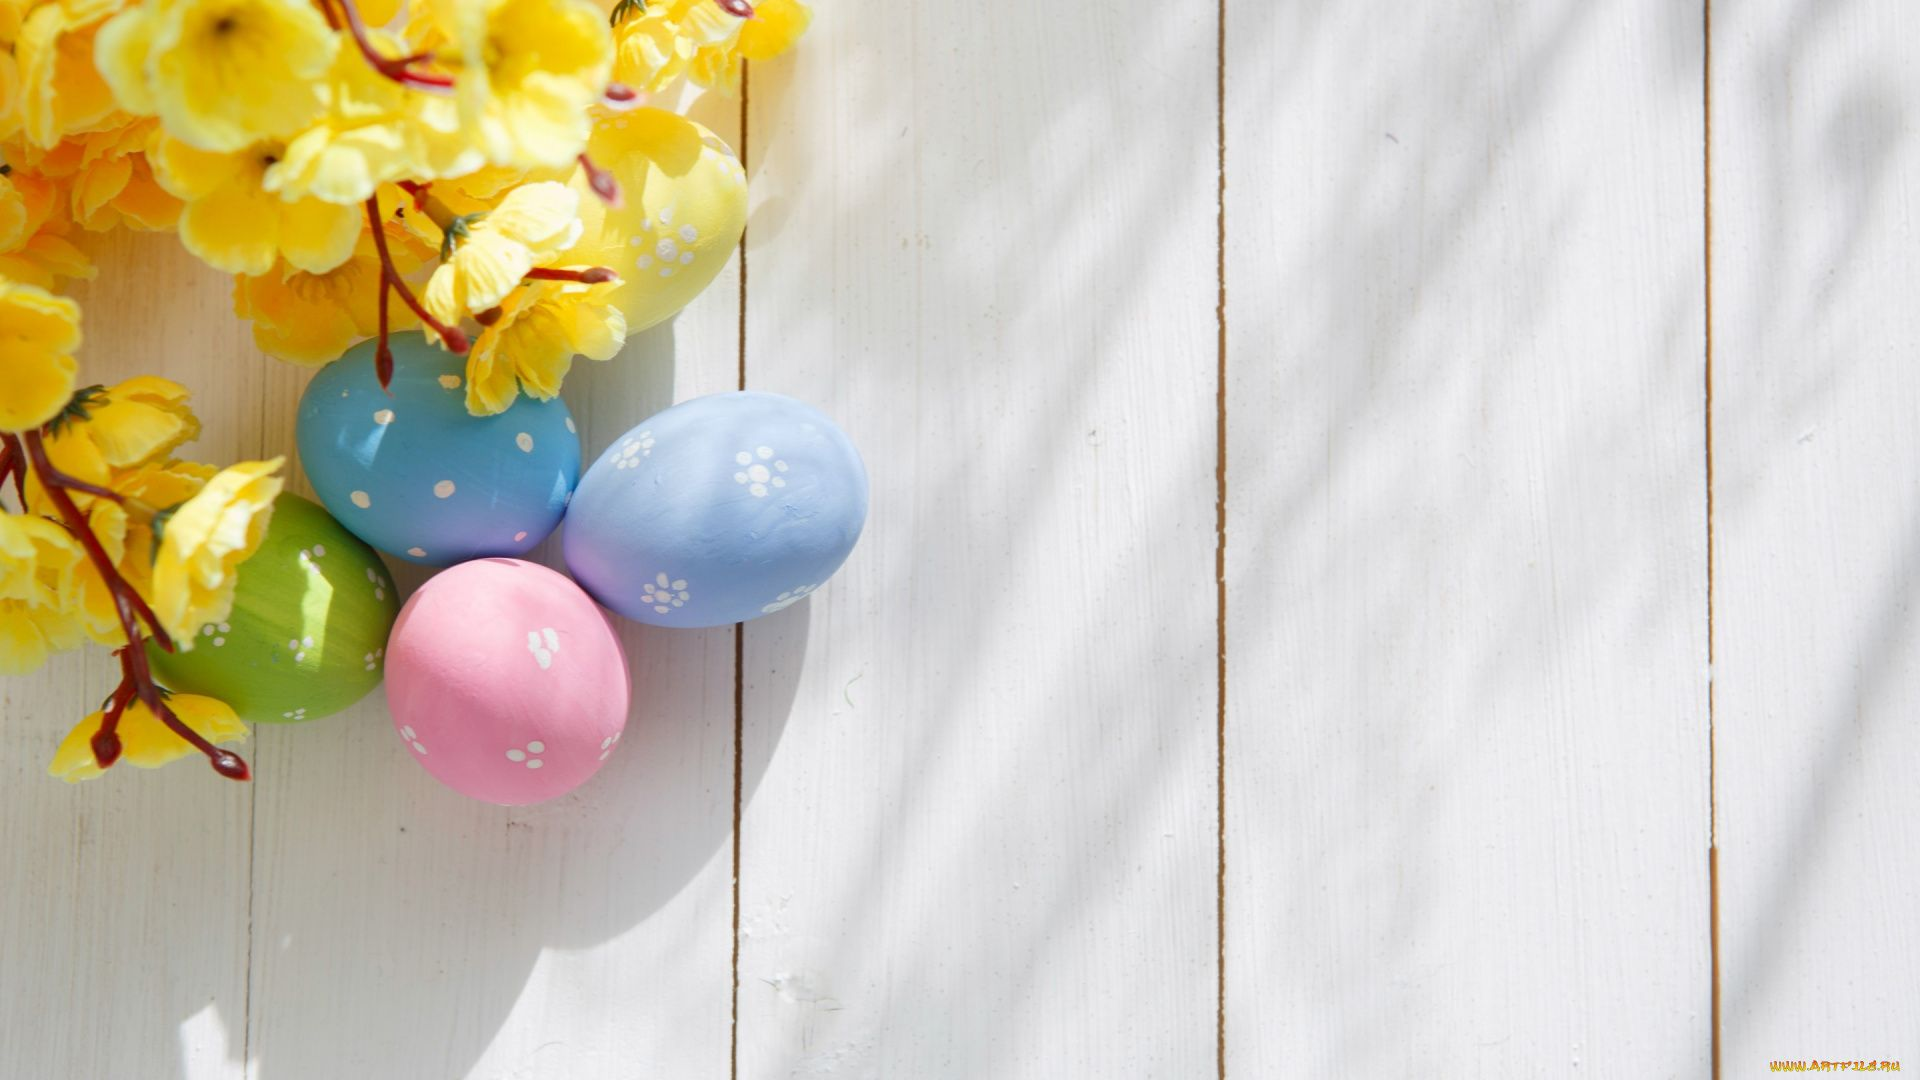 Happy Easter 2019 Images Pictures HD Wallpapers And Photos Download